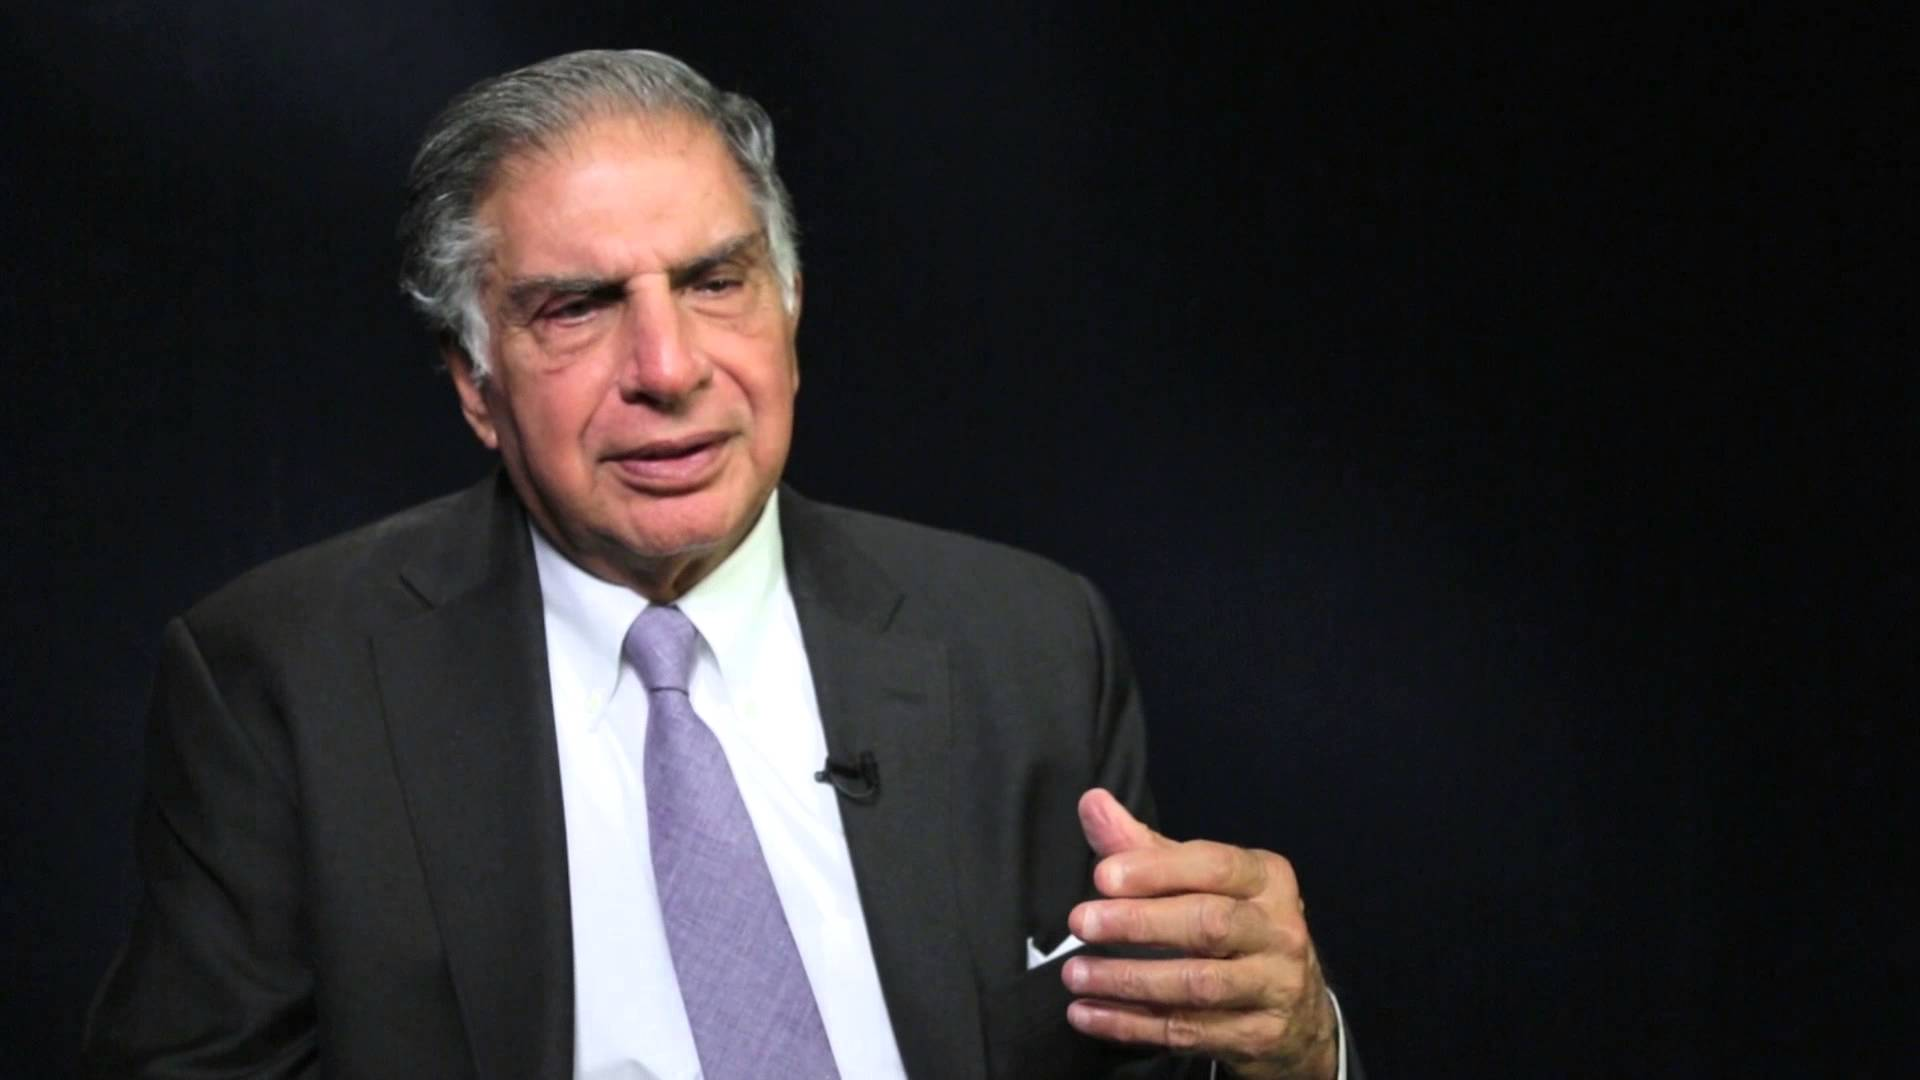 Ratan Tata to Regenerate & Rejuvenate to be Head Indian Railways